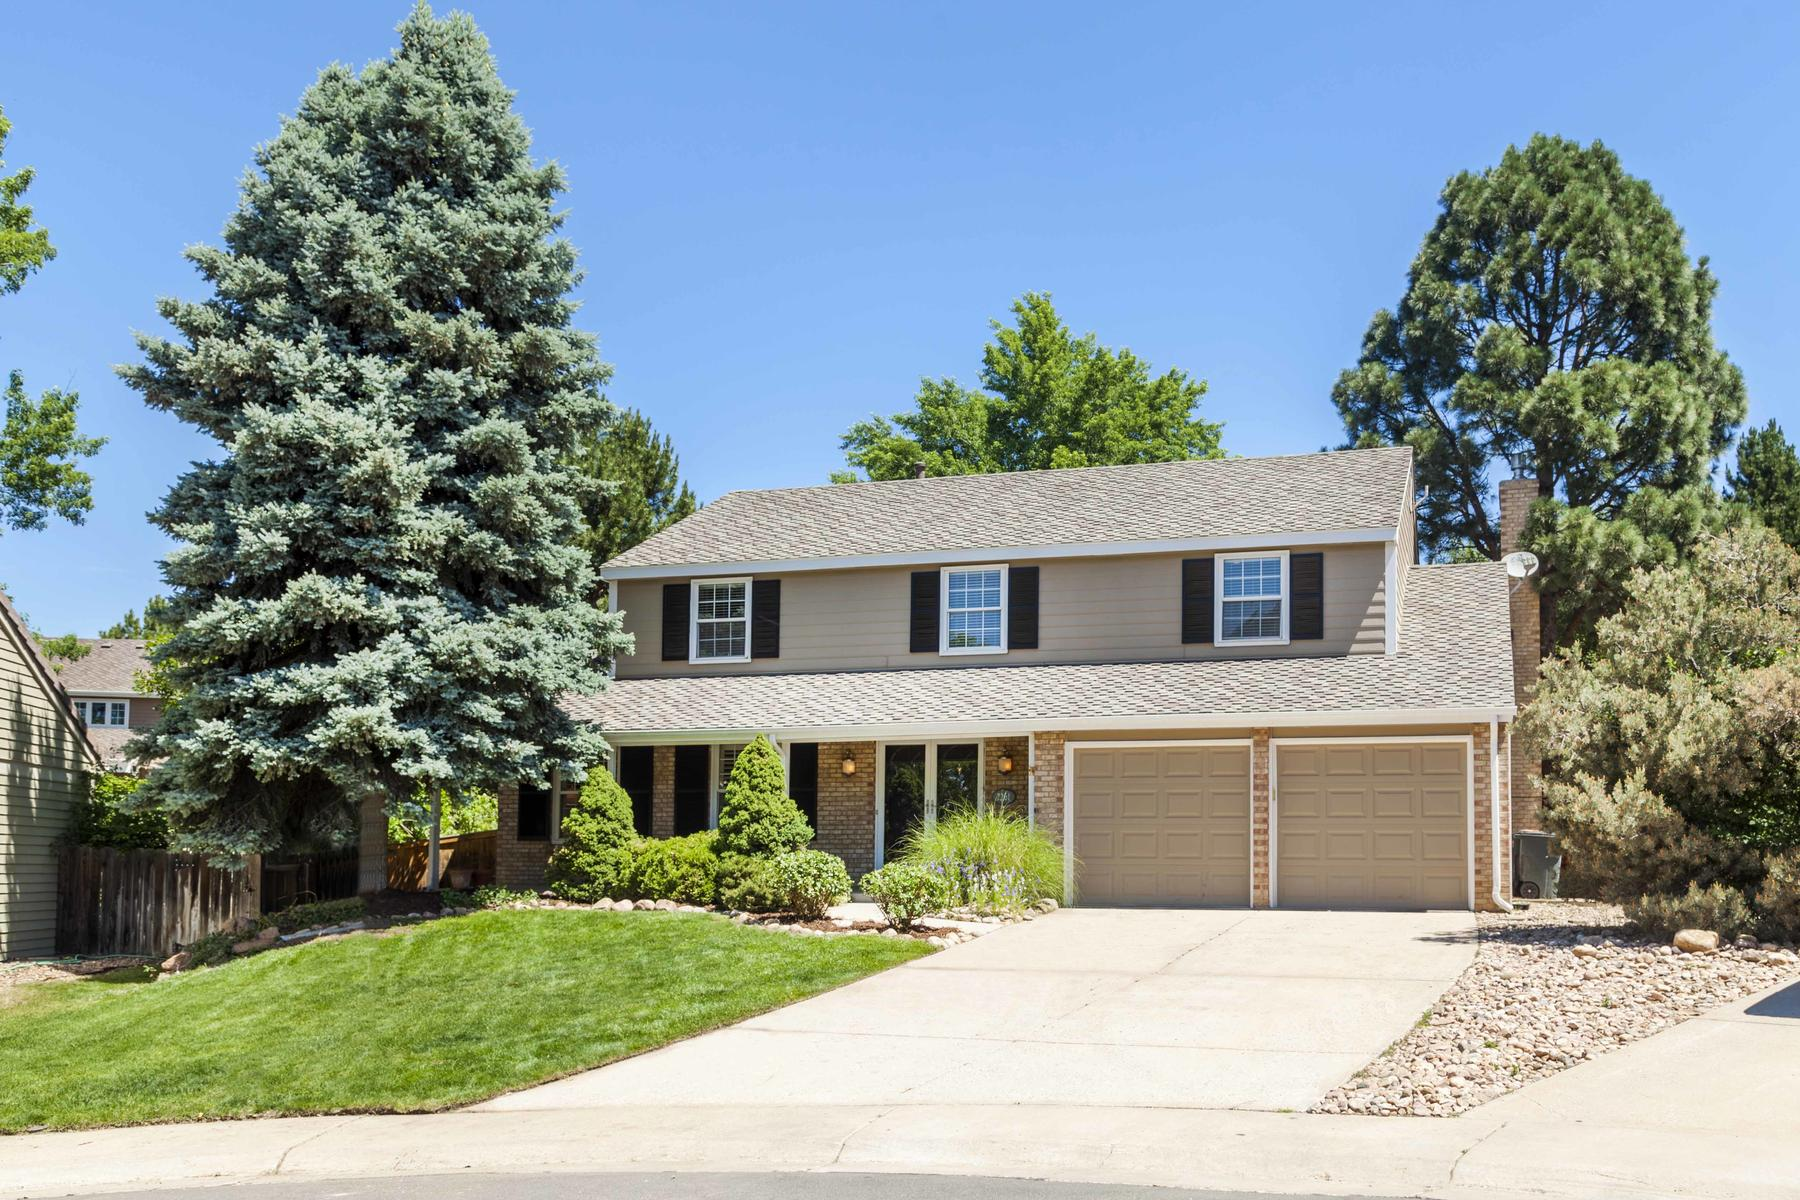 Single Family Home for Active at Welcome To This Remodeled Home In Highly Desirable Homestead 7261 East Hinsdale Avenue Centennial, Colorado 80112 United States